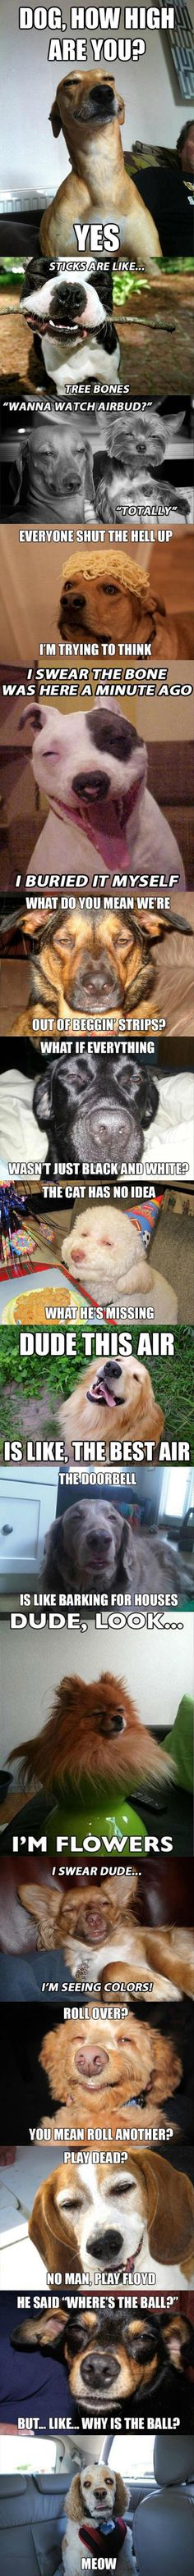 How High Are You Dog? – 16 Pics